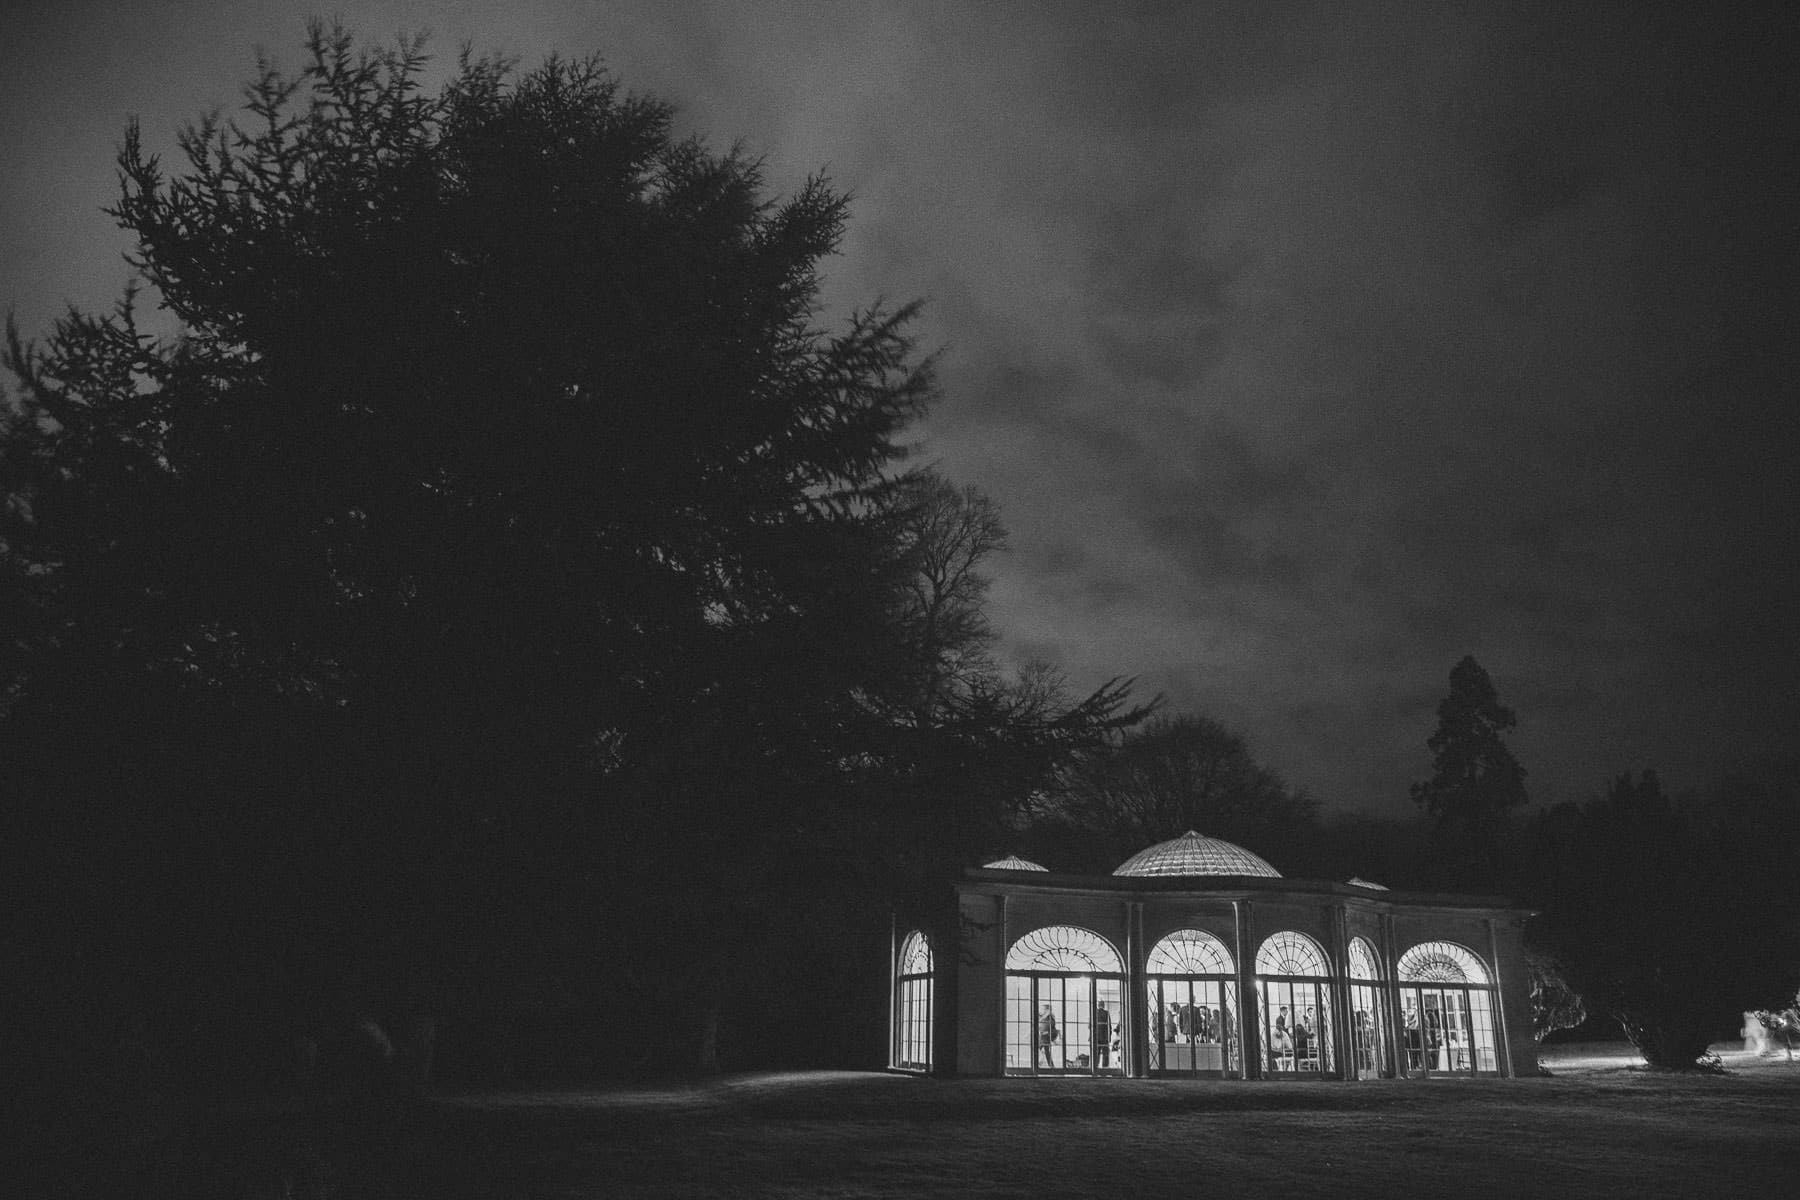 The Barton Hall Orangery at night